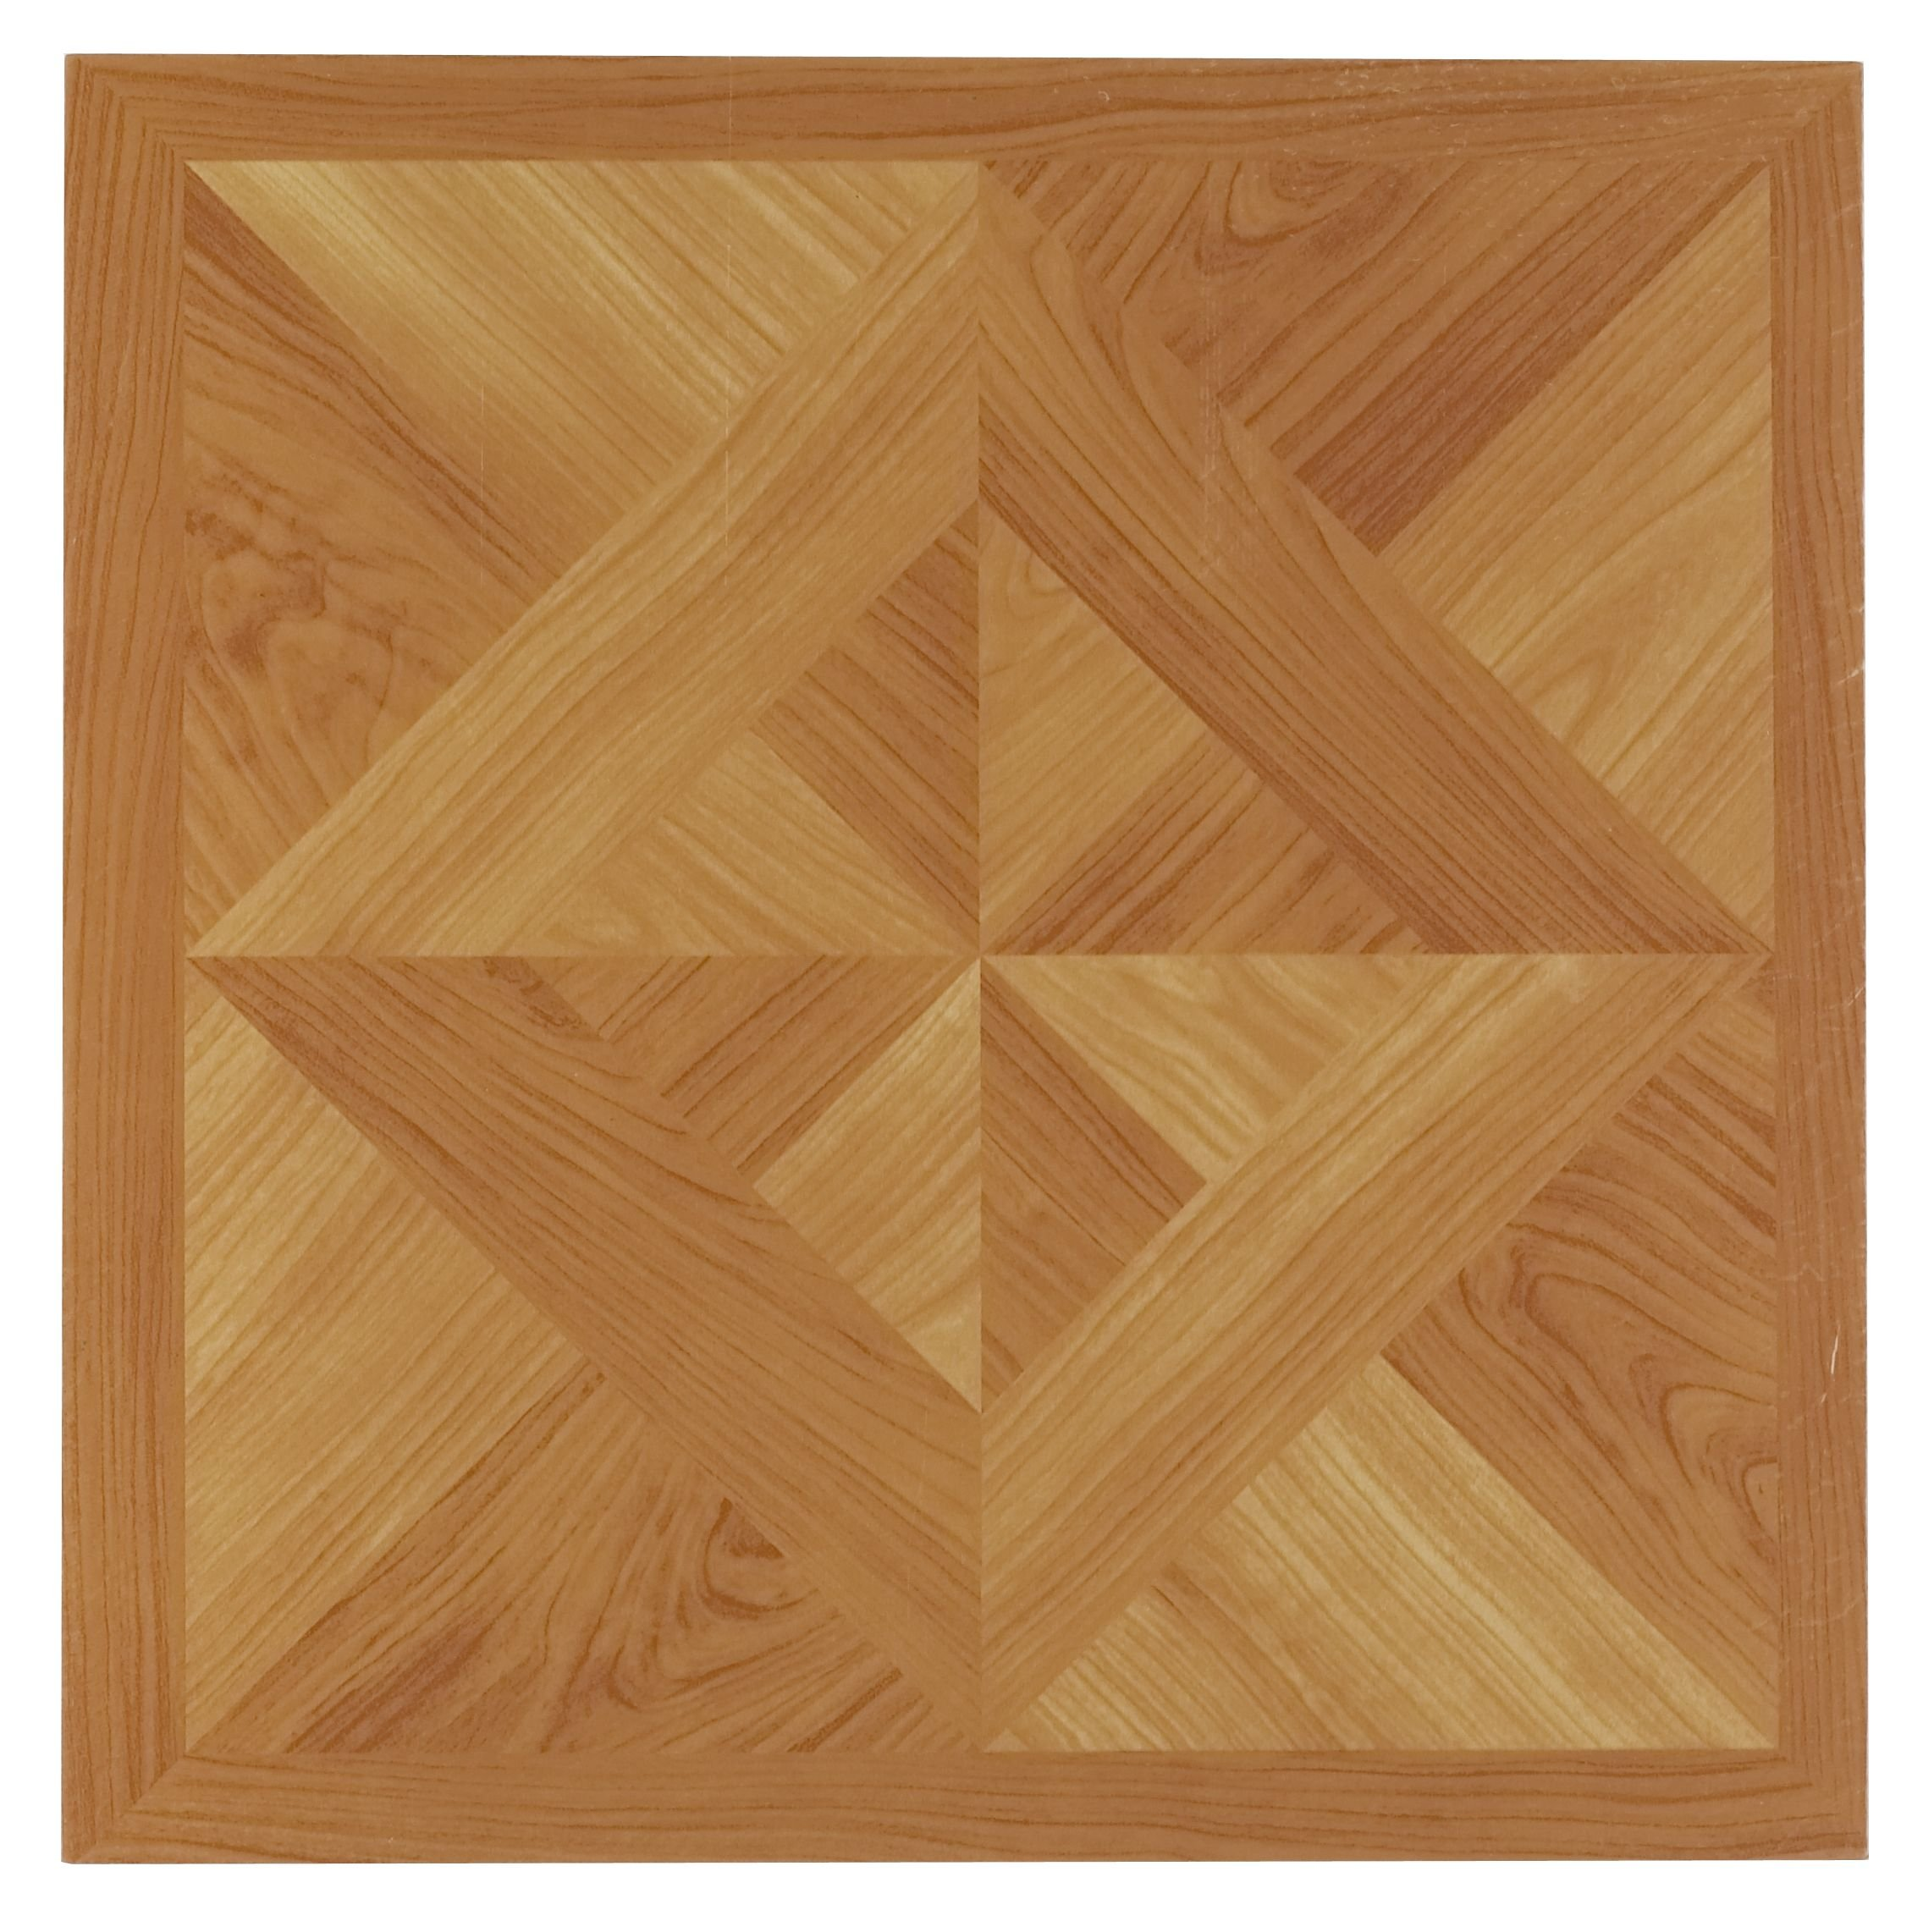 Achim Home Furnishings FTVWD20220 Nexus 12-Inch Vinyl Tile, Wood Classic Light Oak Diamond Parquet, 20-Pack